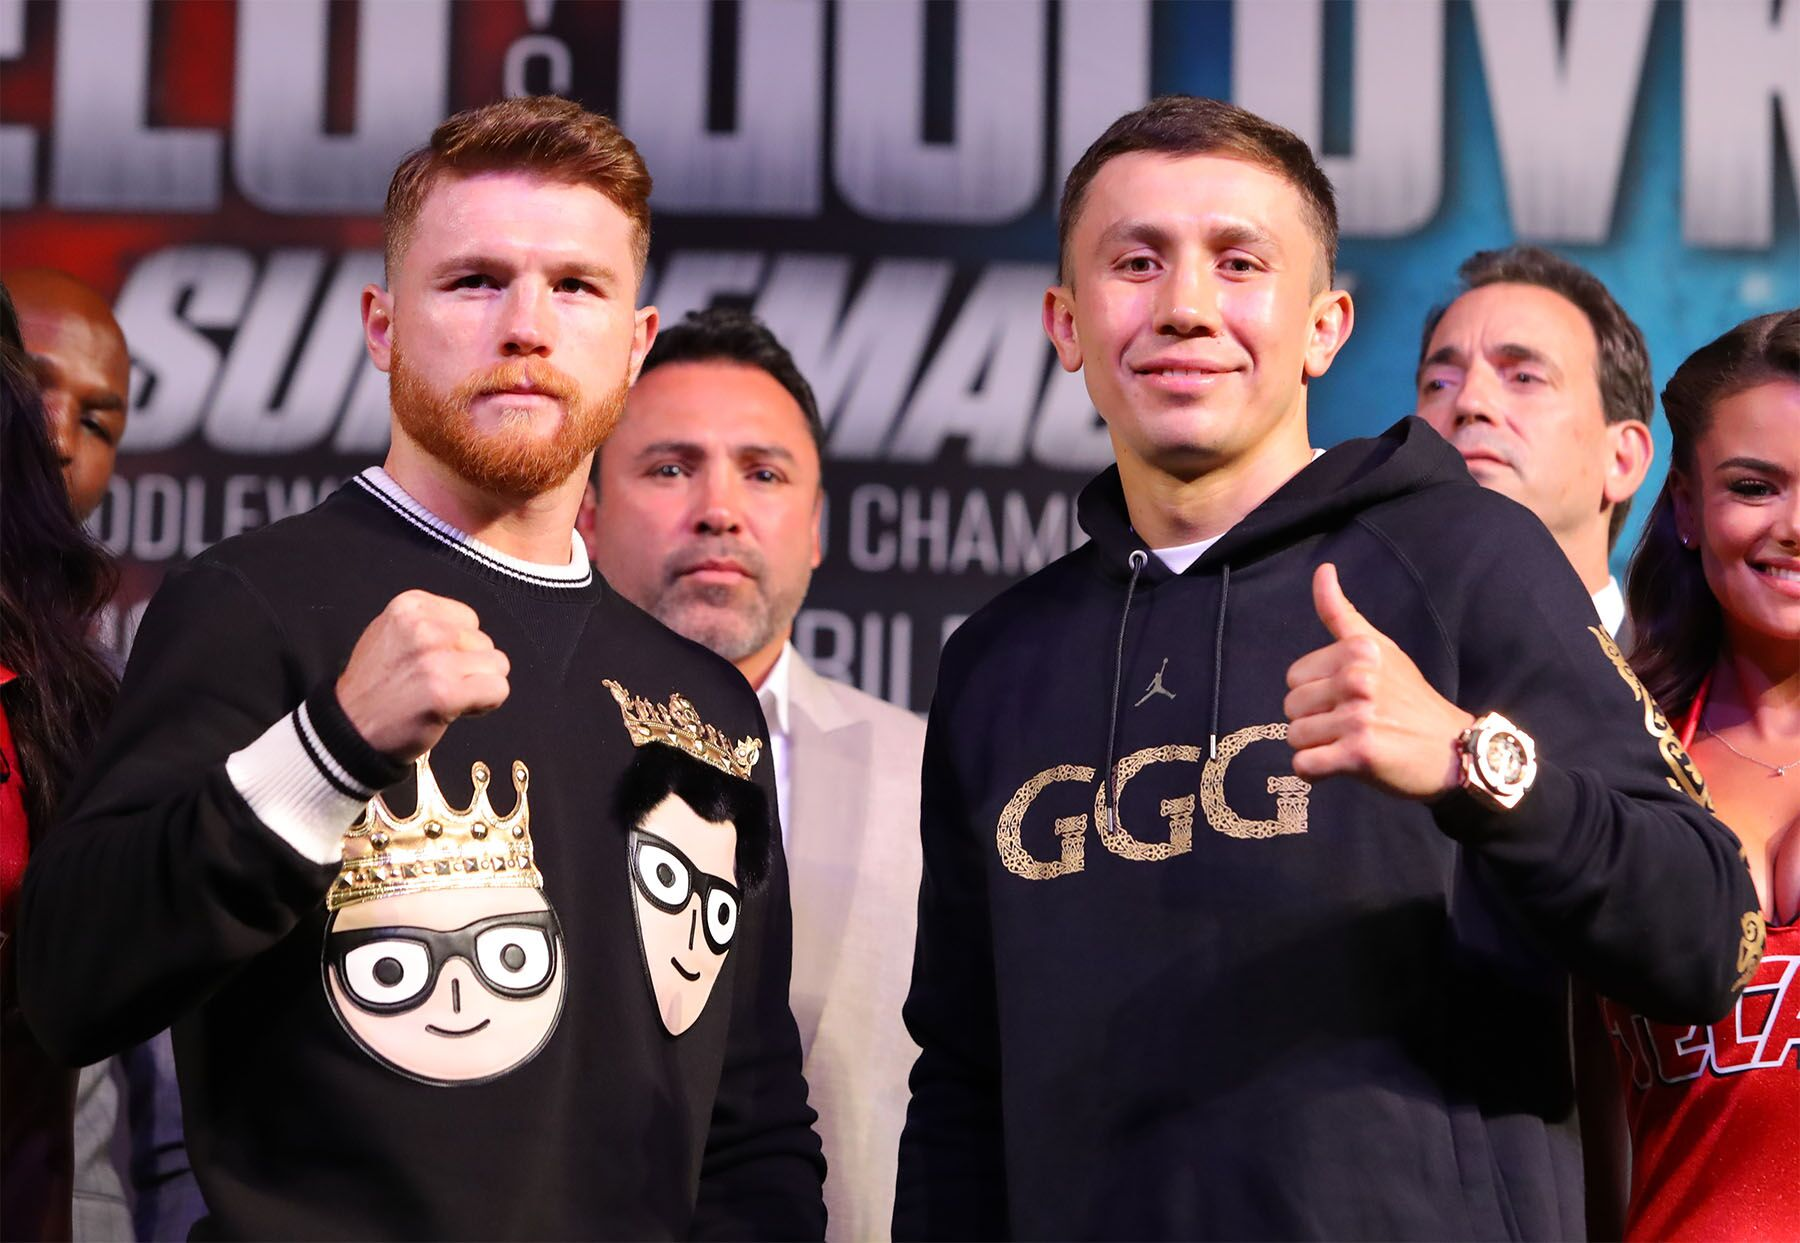 Is Canelo vs. GGG on Showtime?